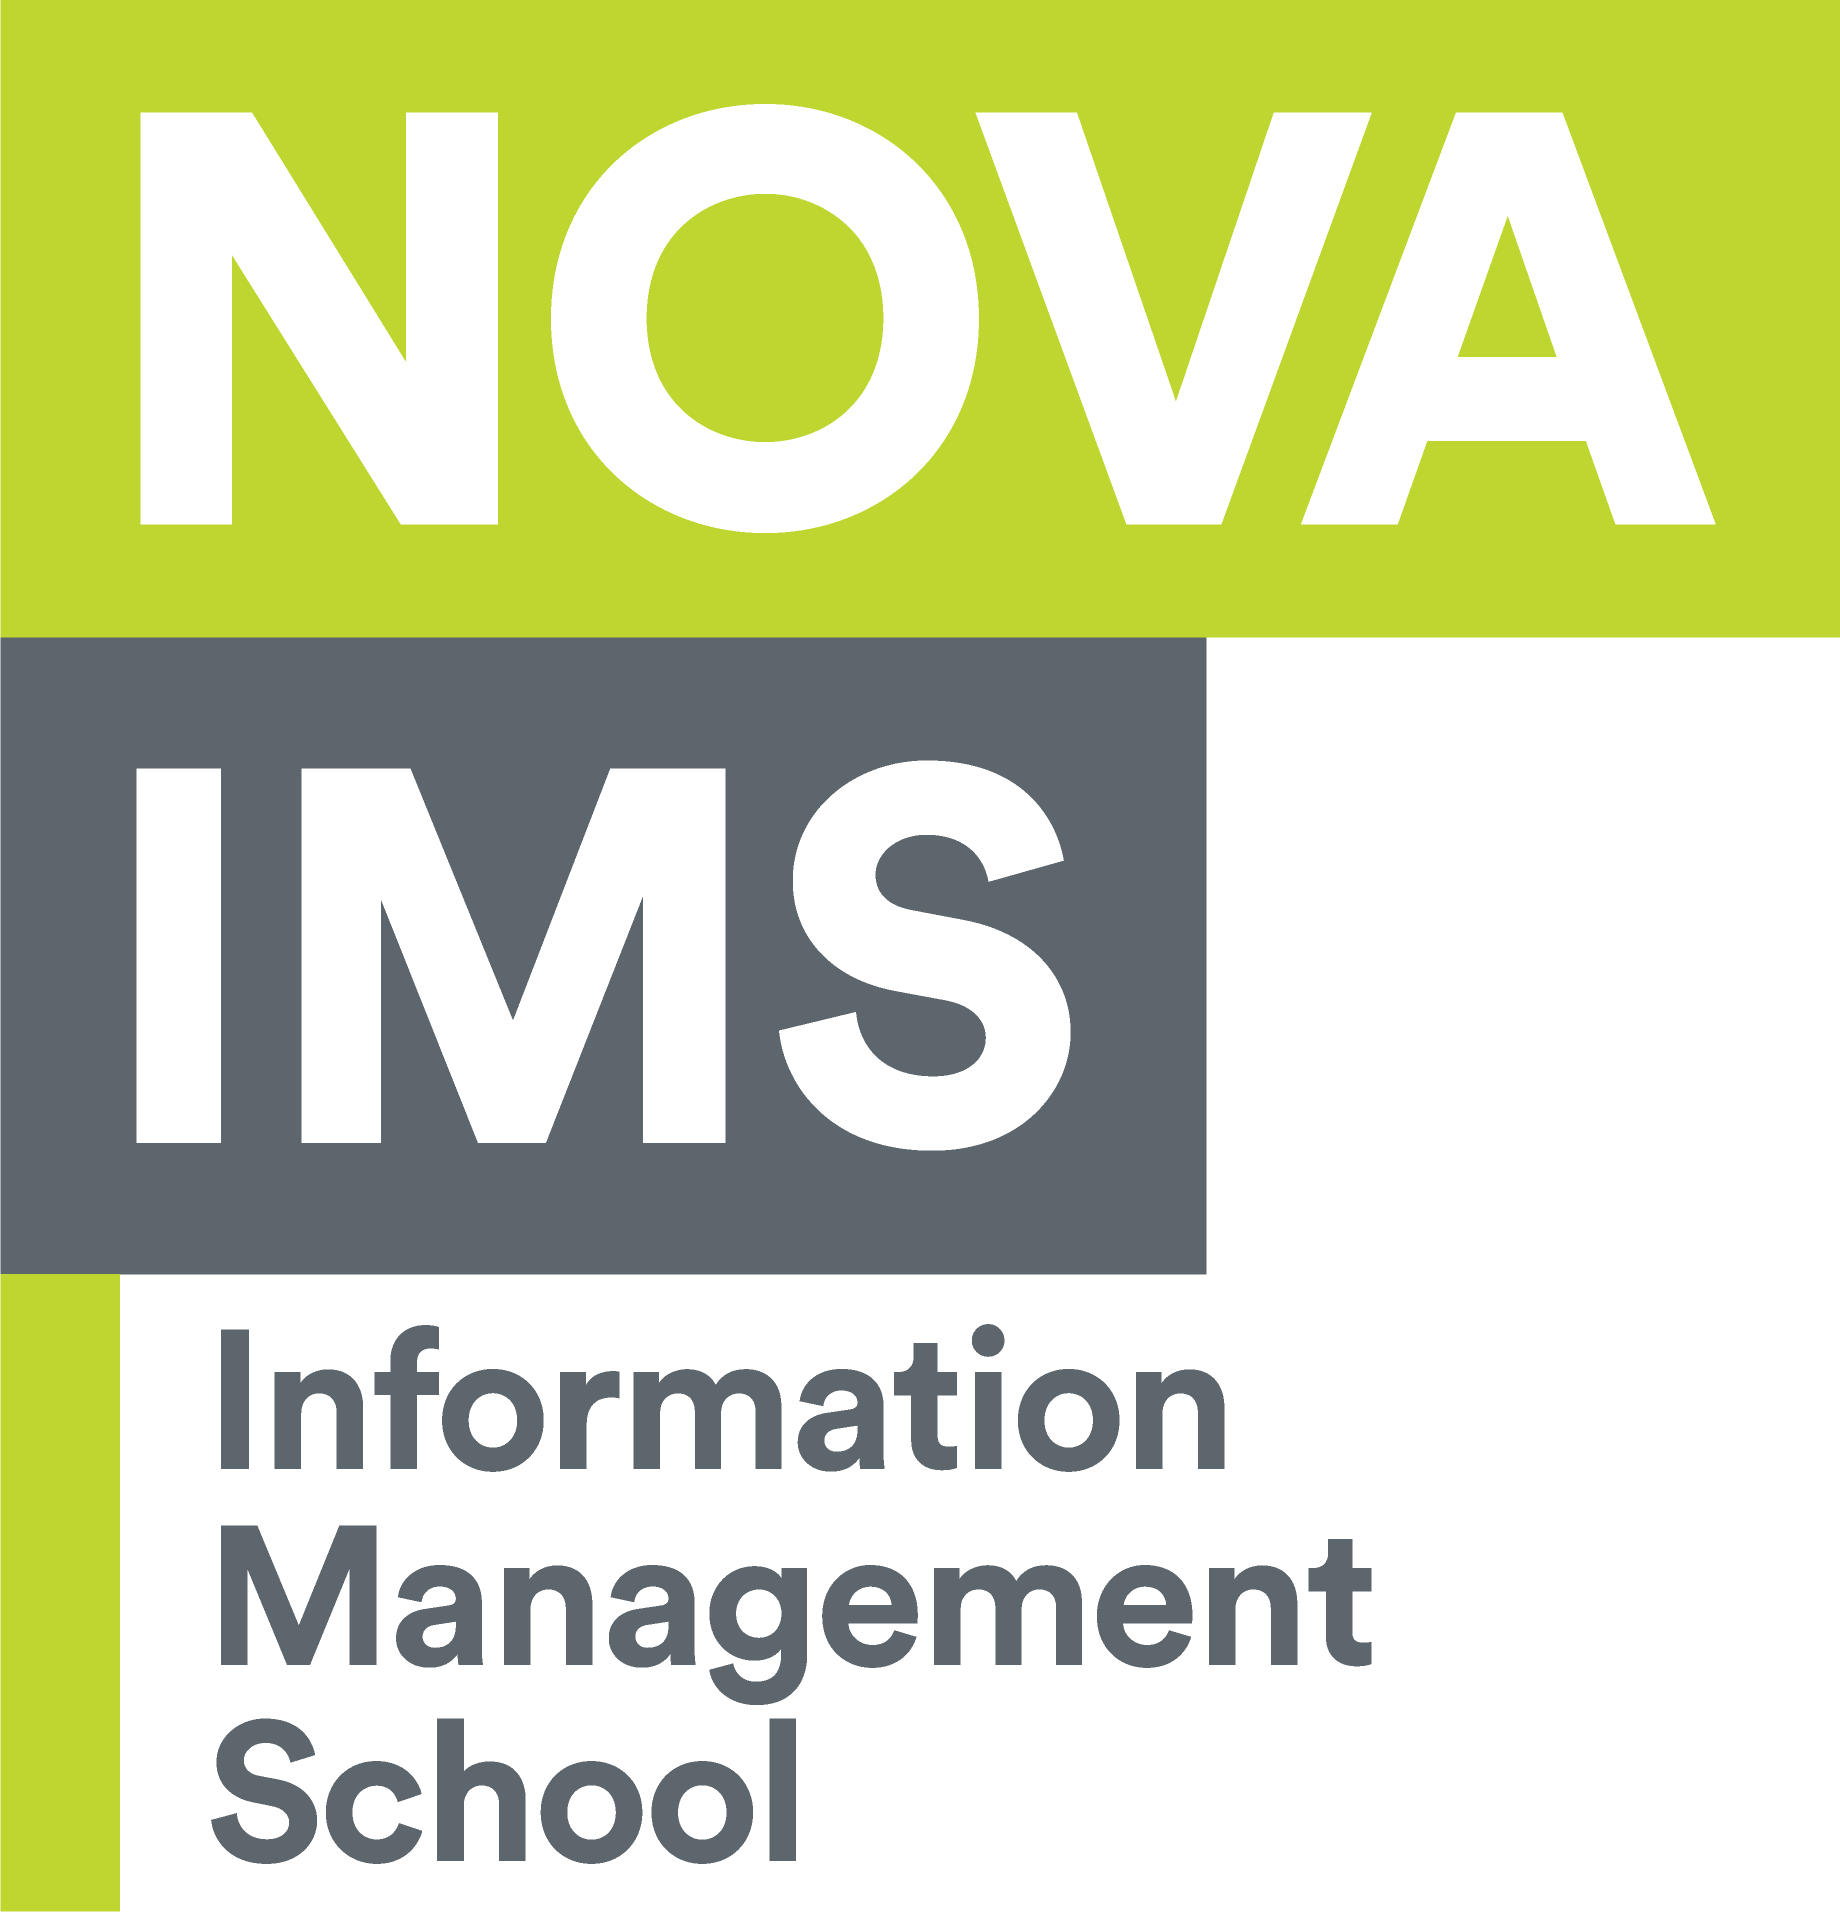 Logo NOVA Information Management School (NOVA IMS) - Universidade Nova de Lisboa